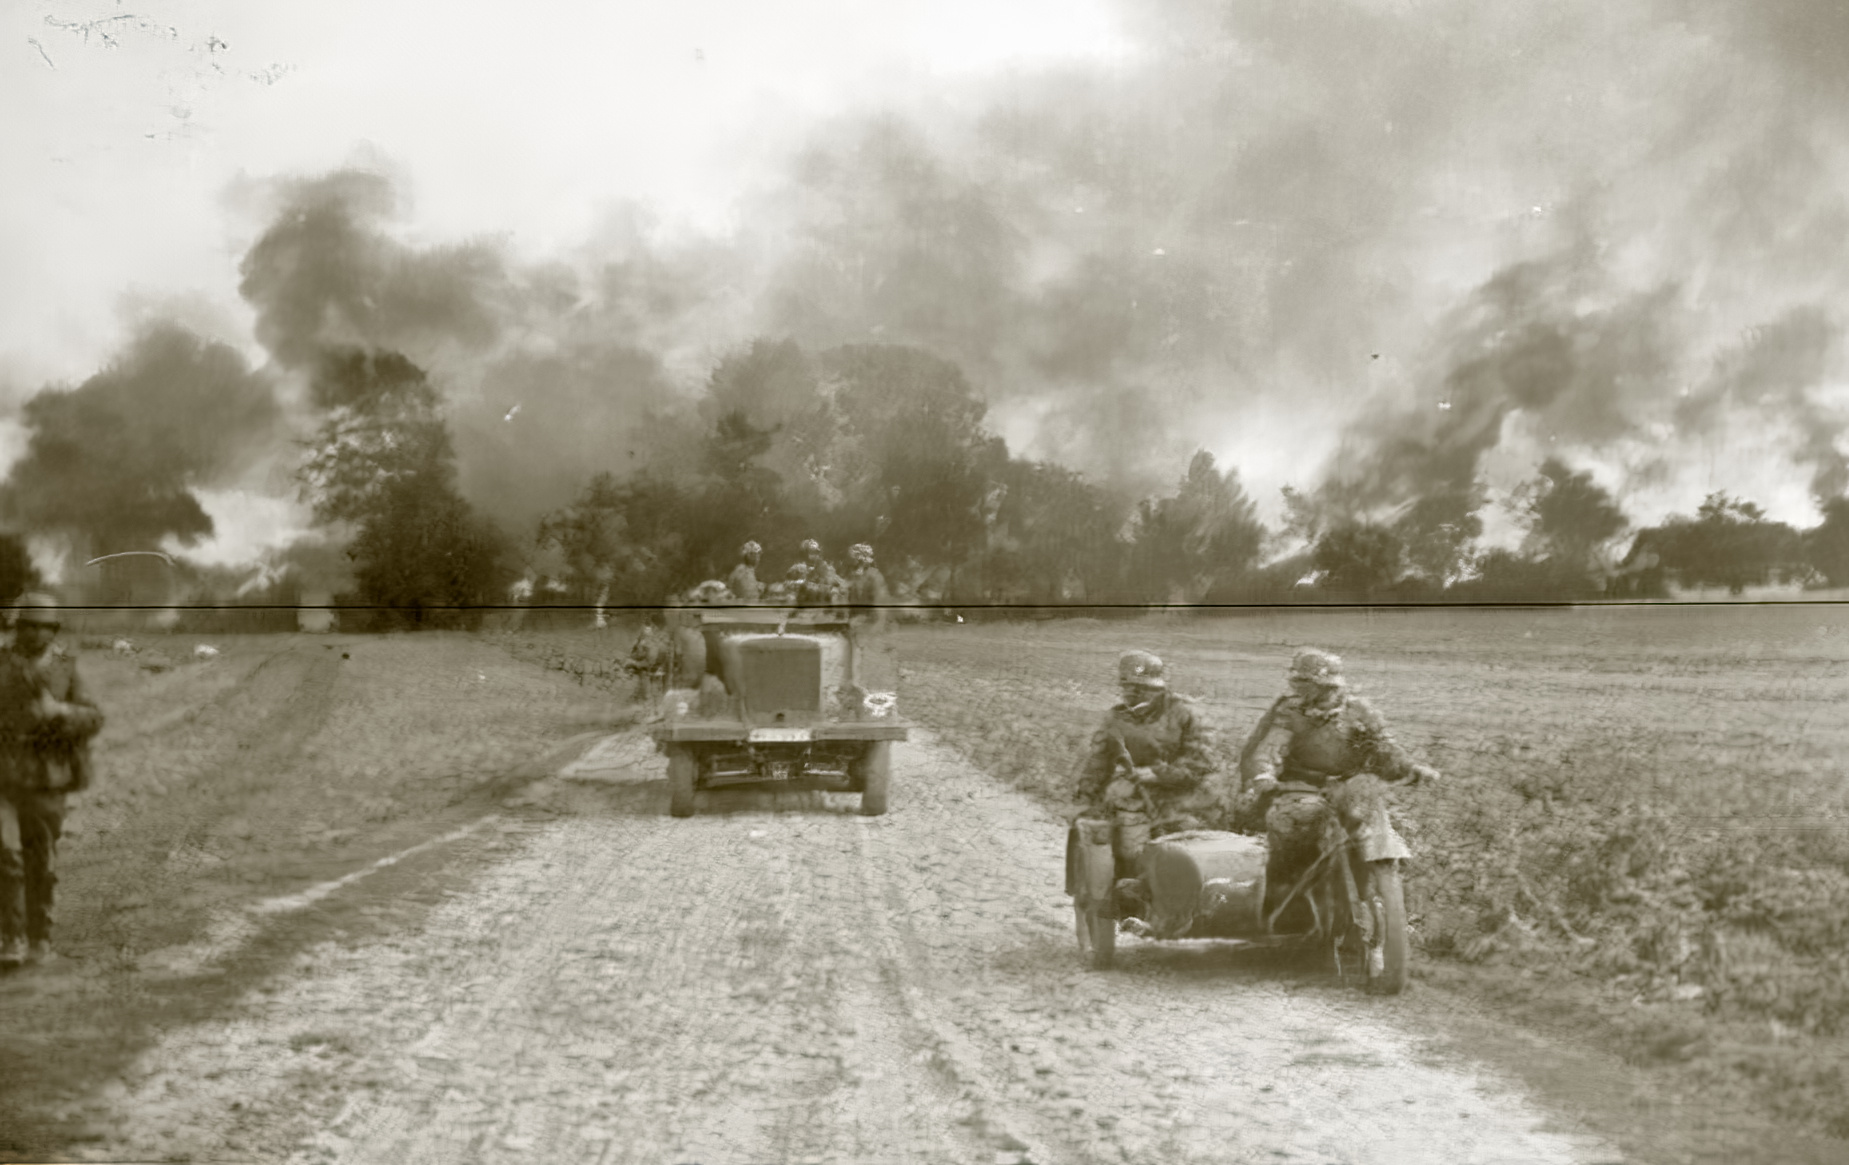 Wehrmacht troop column advance through a unknown village leaving a trail of distruction 1940 ebay 01